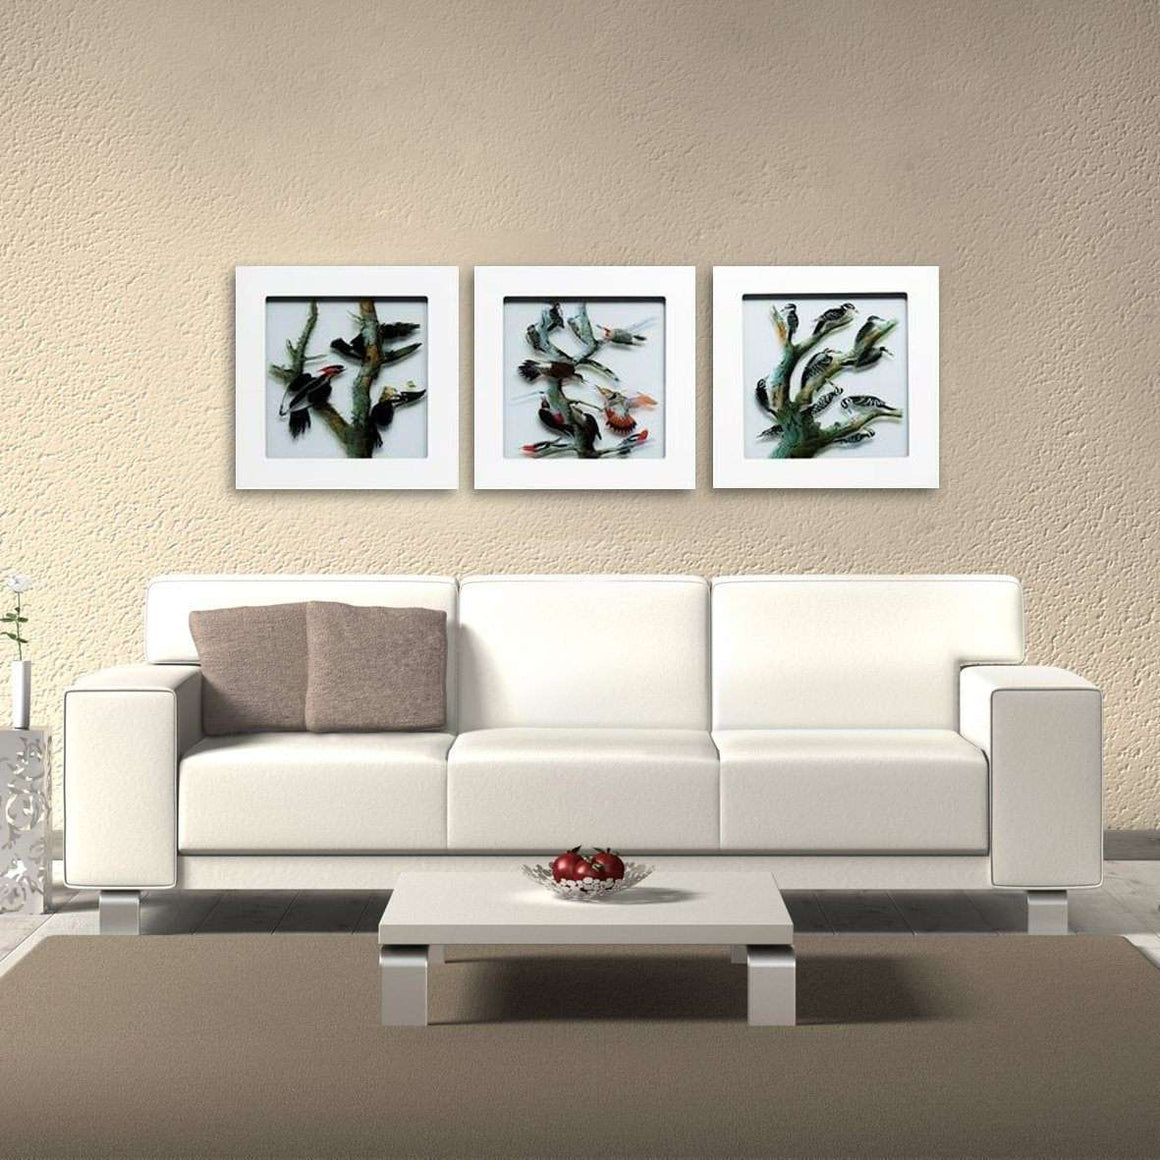 Sanctuary - Shadowbox Frame Print on Glass - Set of 3